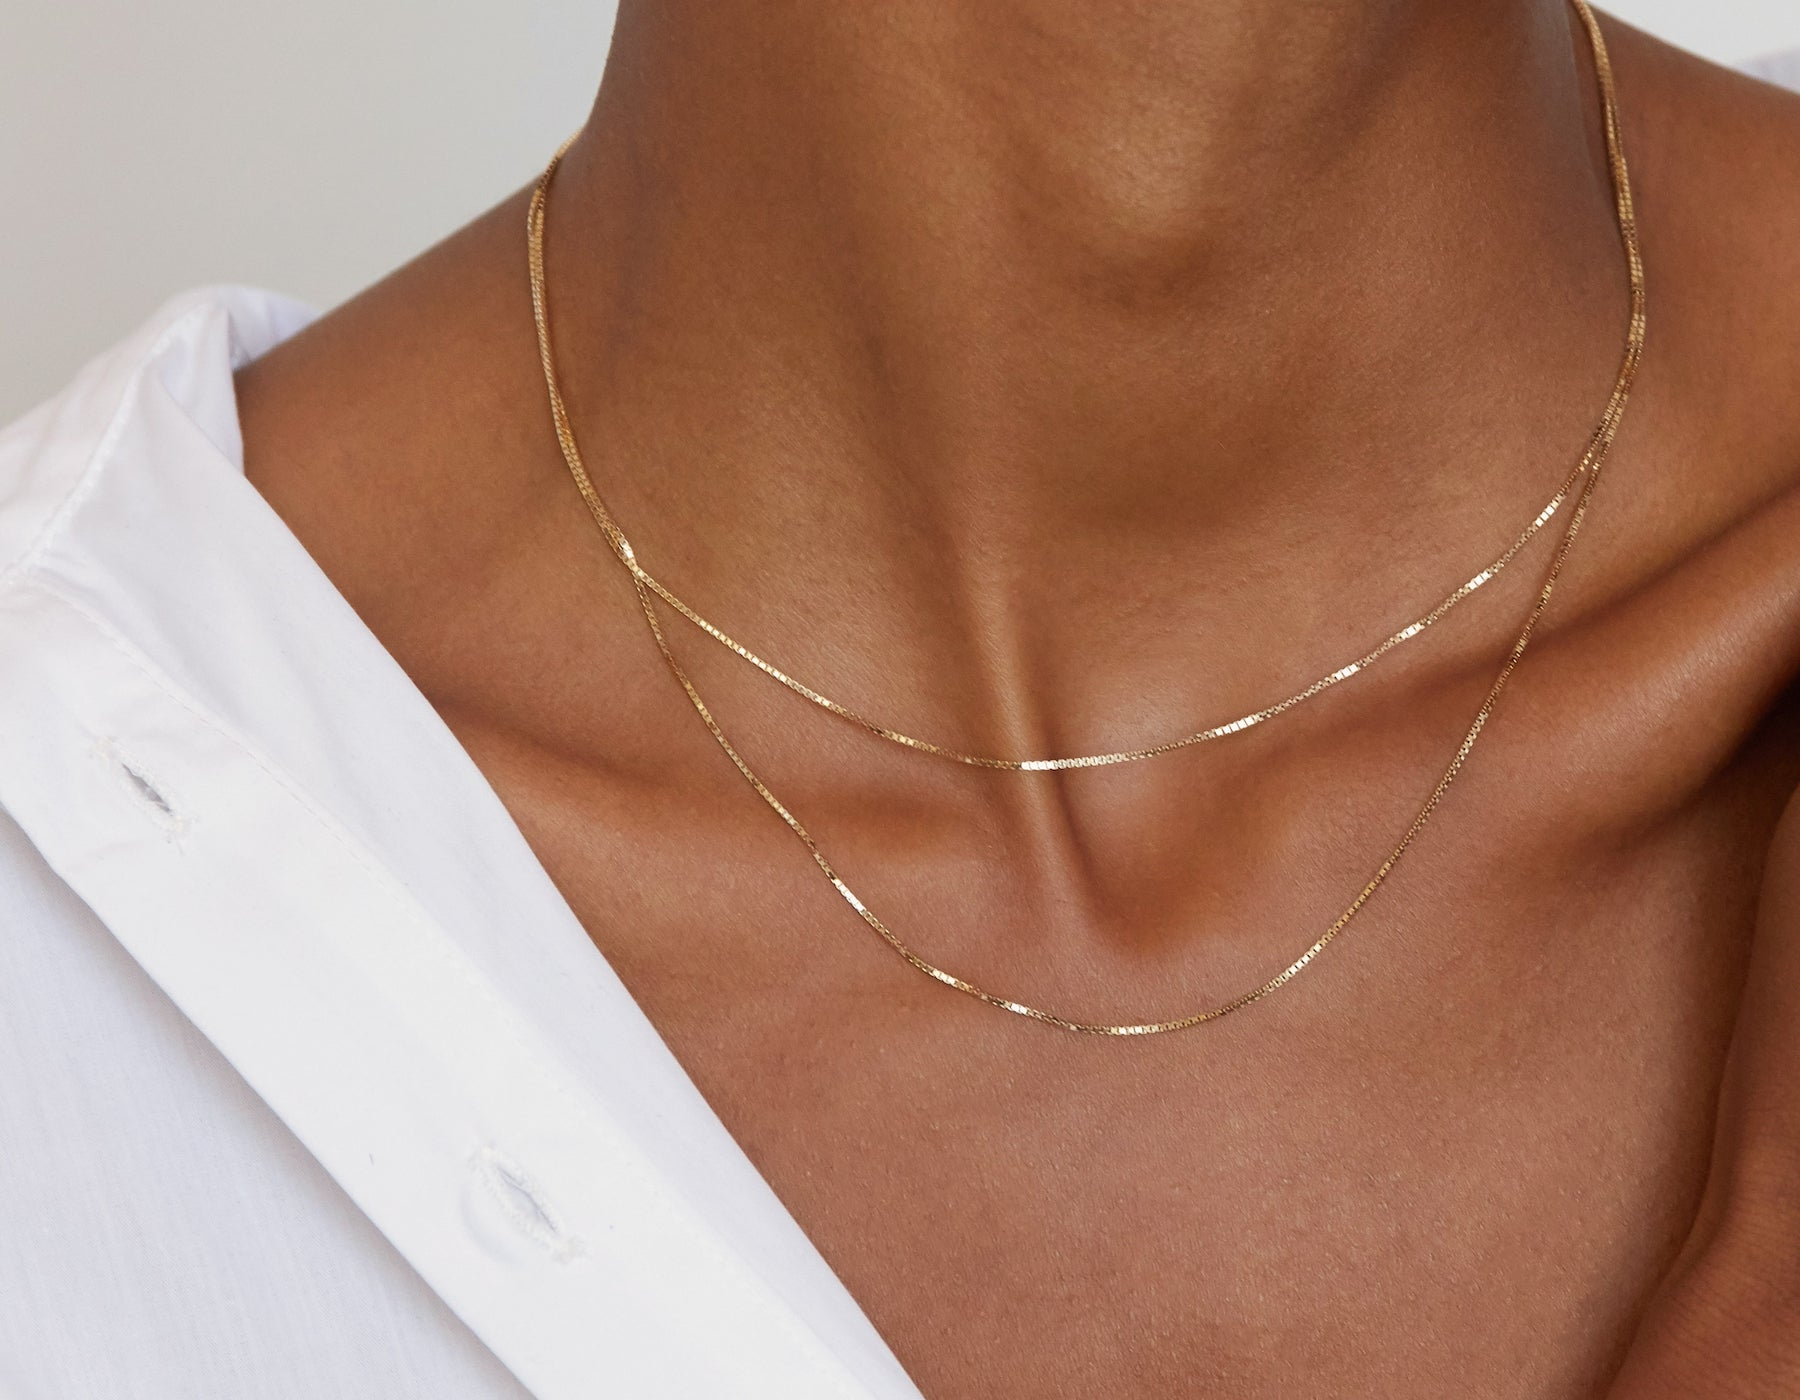 Model wearing Vrai 14k solid gold Silk Box Chain necklace diamond cut chain simple classic